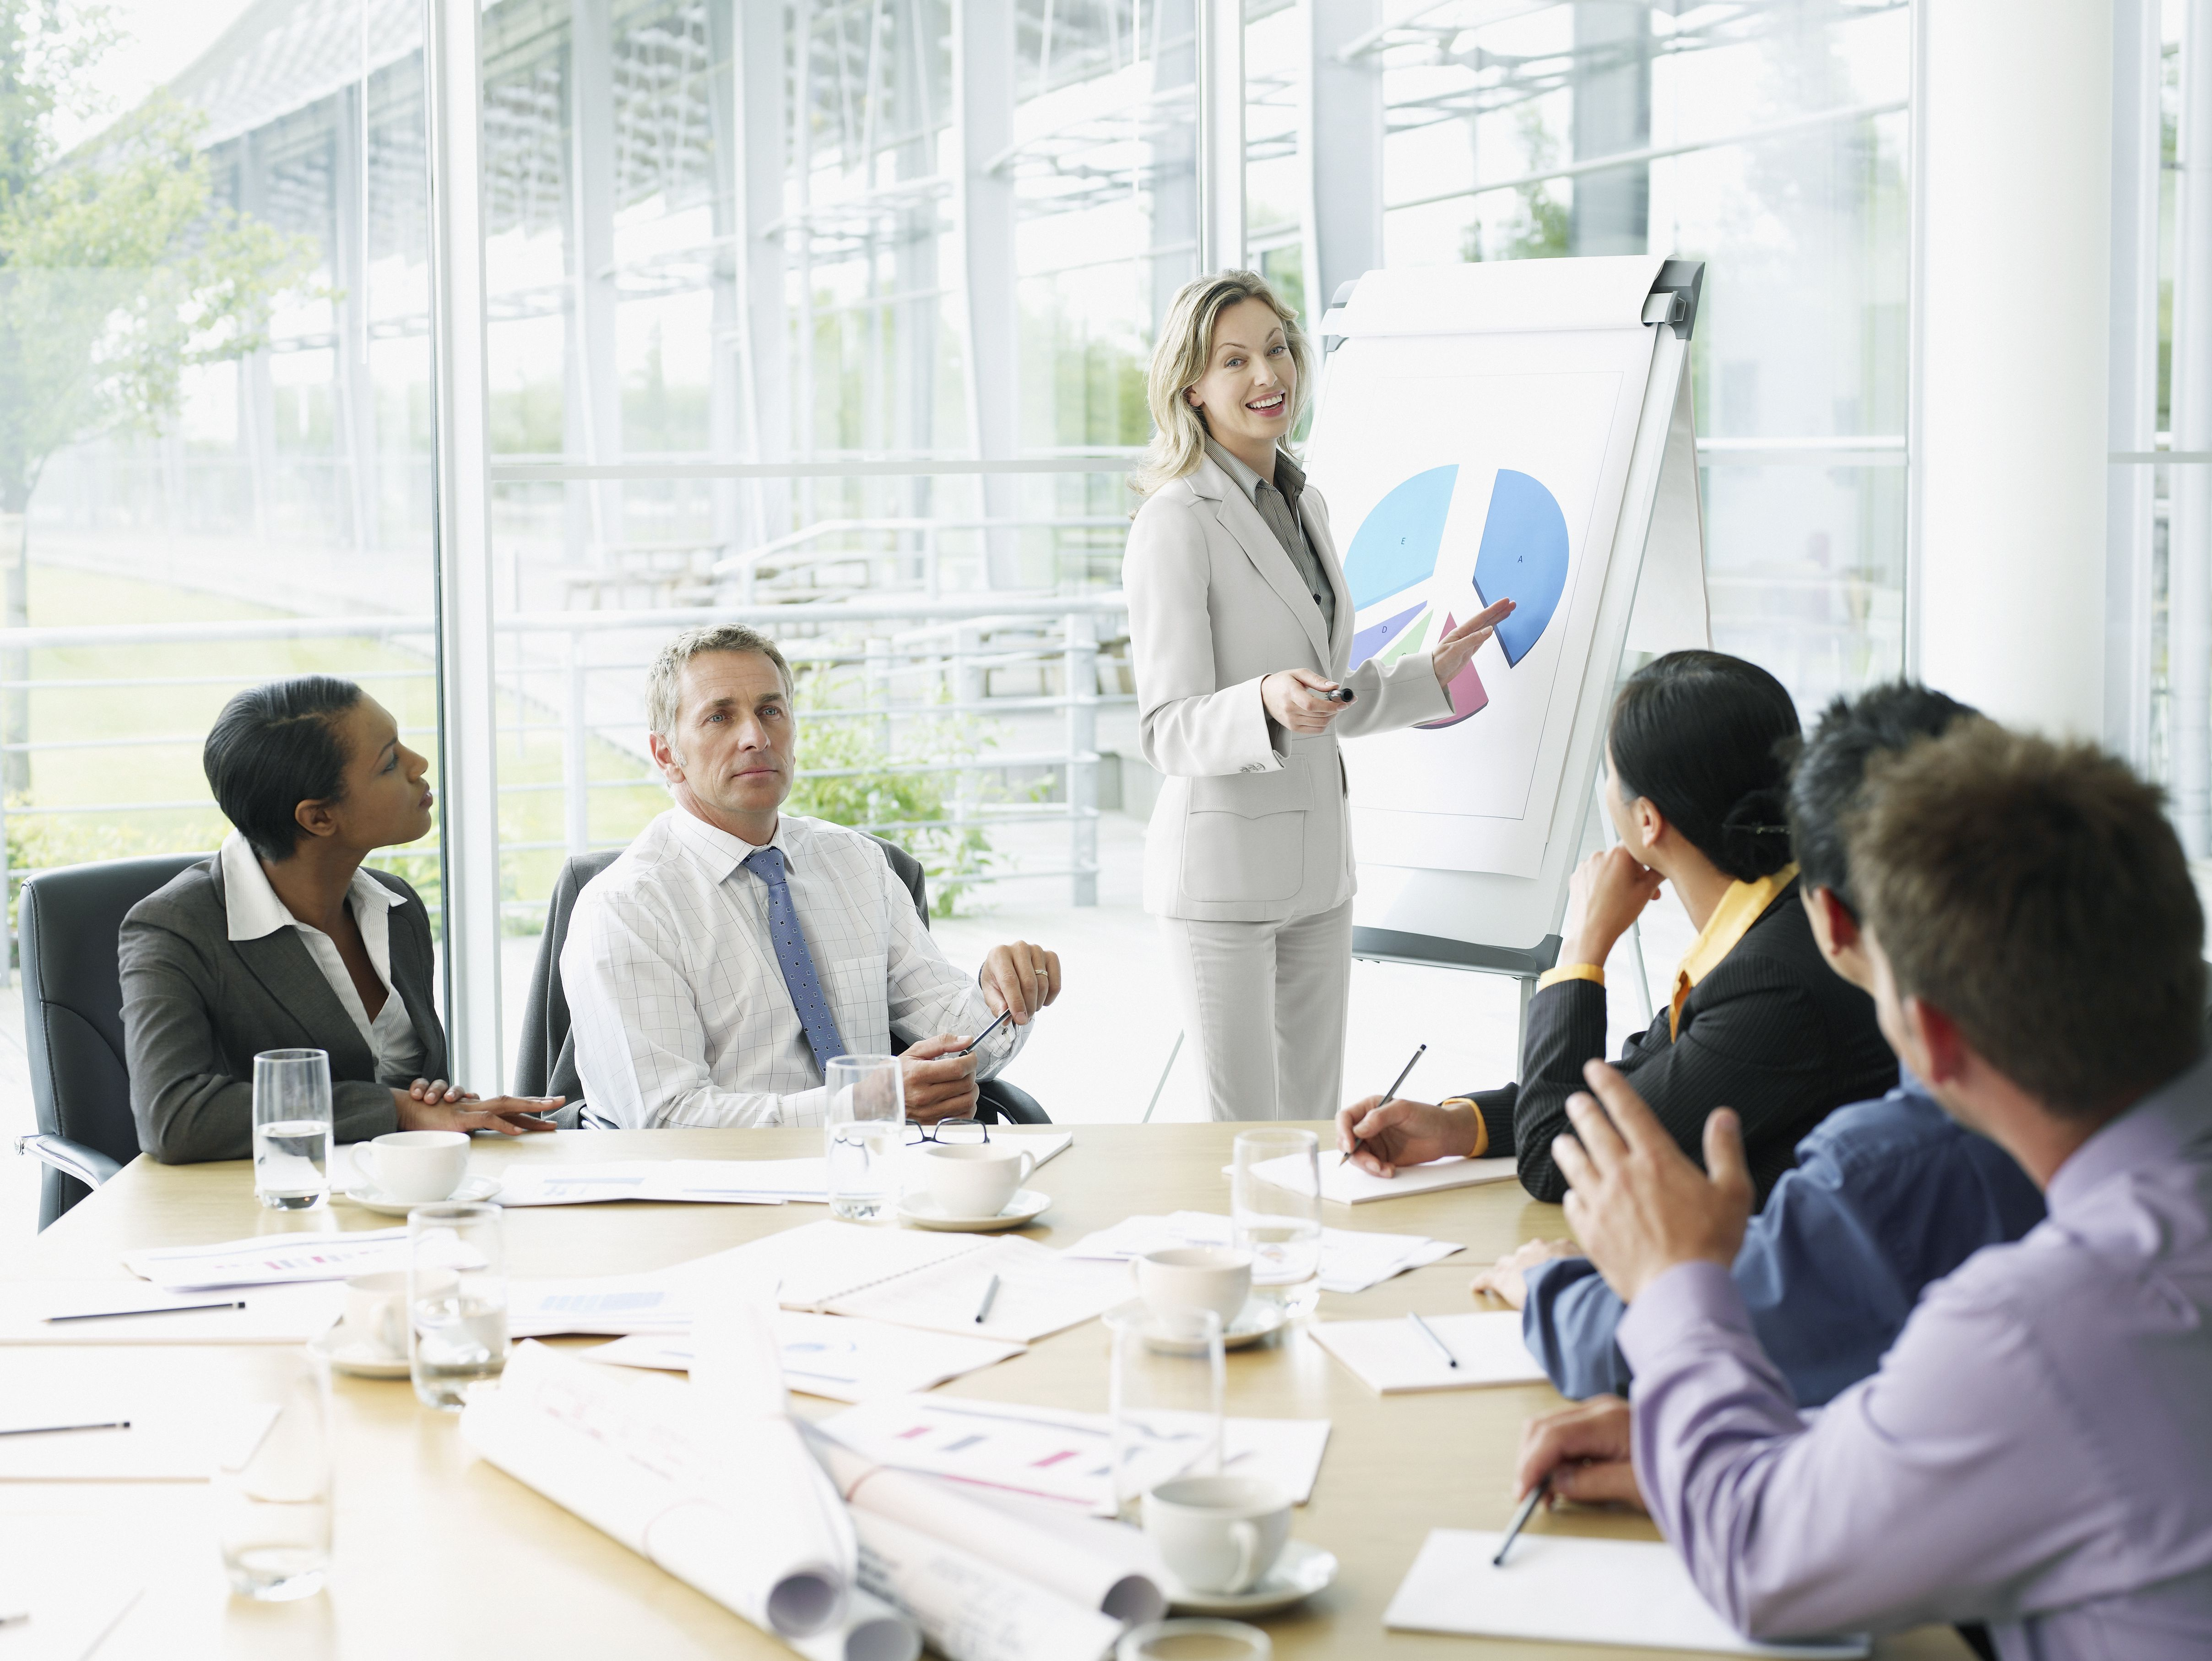 Businesspeople having meeting in conference room